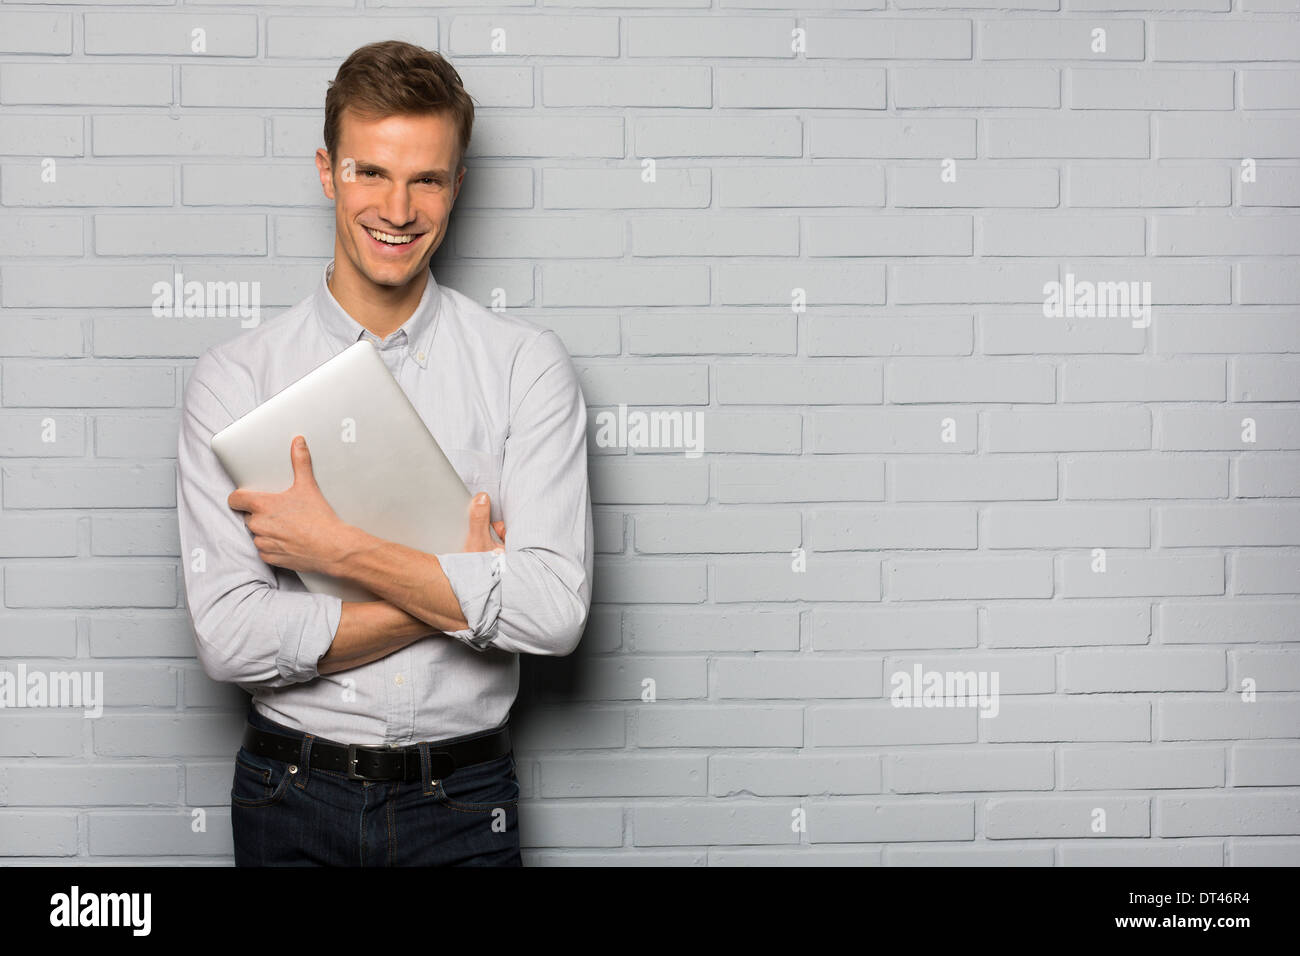 Male smiling computer studio grey background looking camera - Stock Image